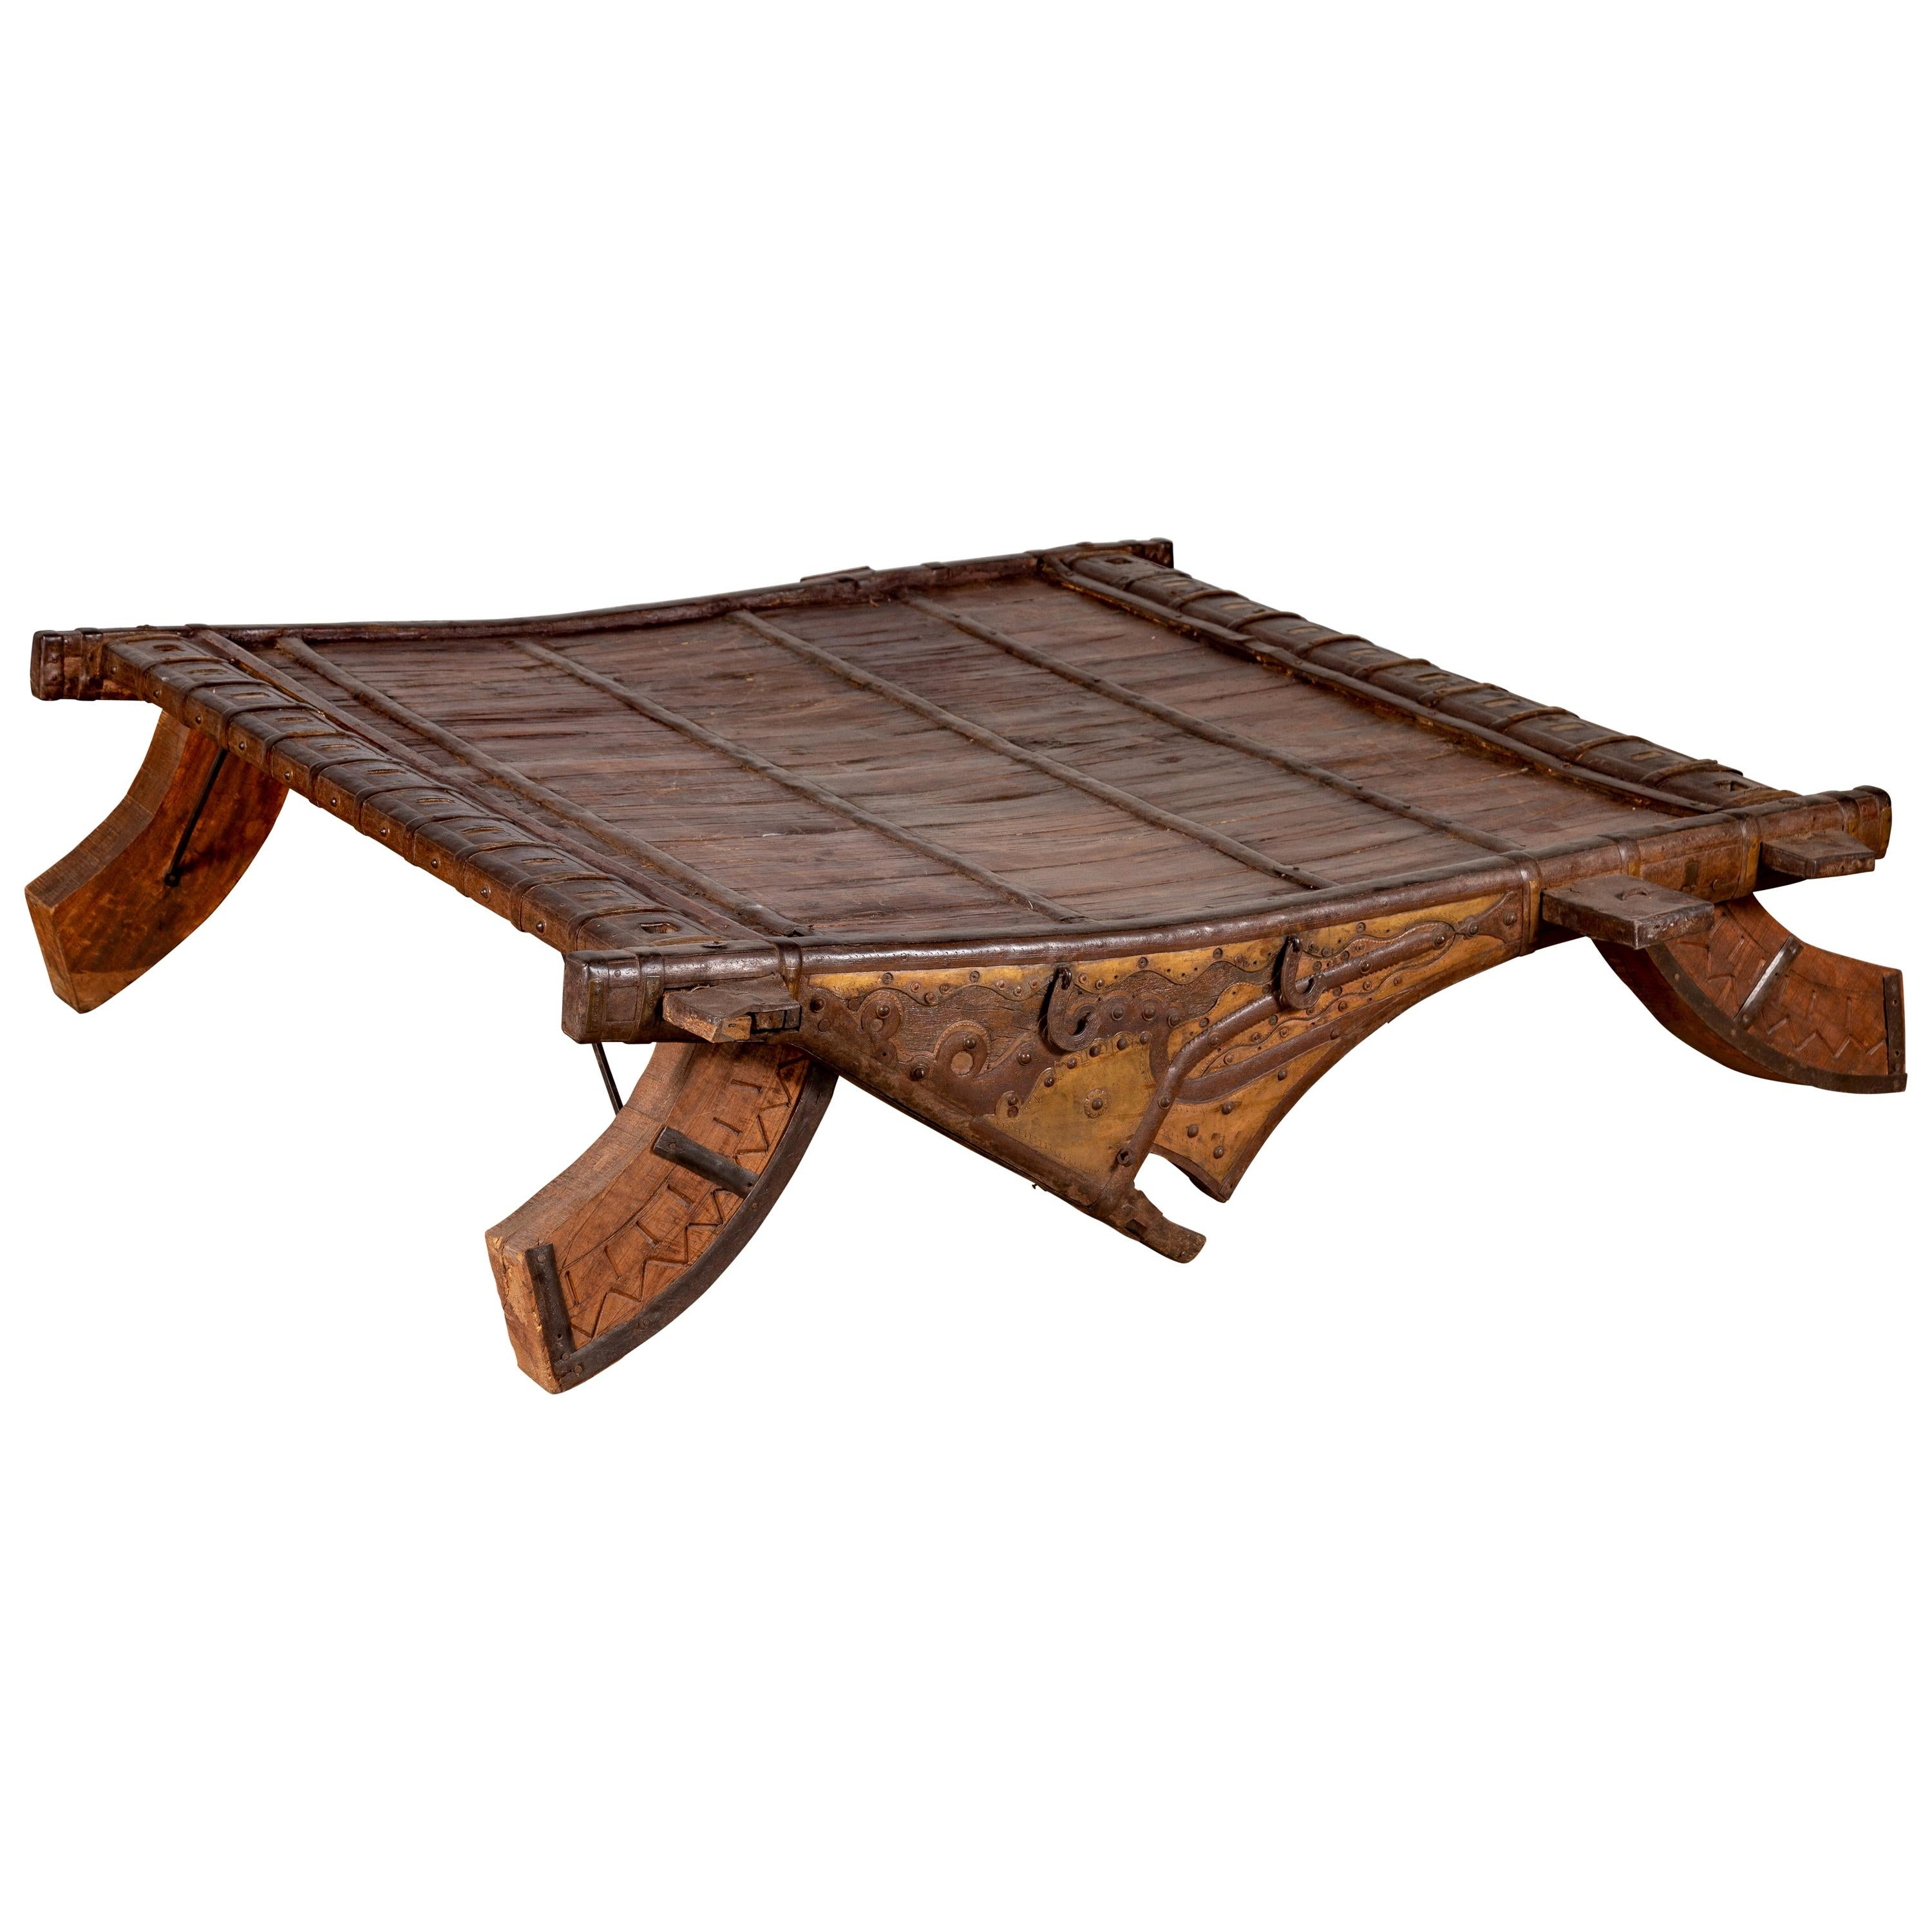 Antique Indian Rustic Wooden Ox Cart with Metal Accents Made into a Coffee Table